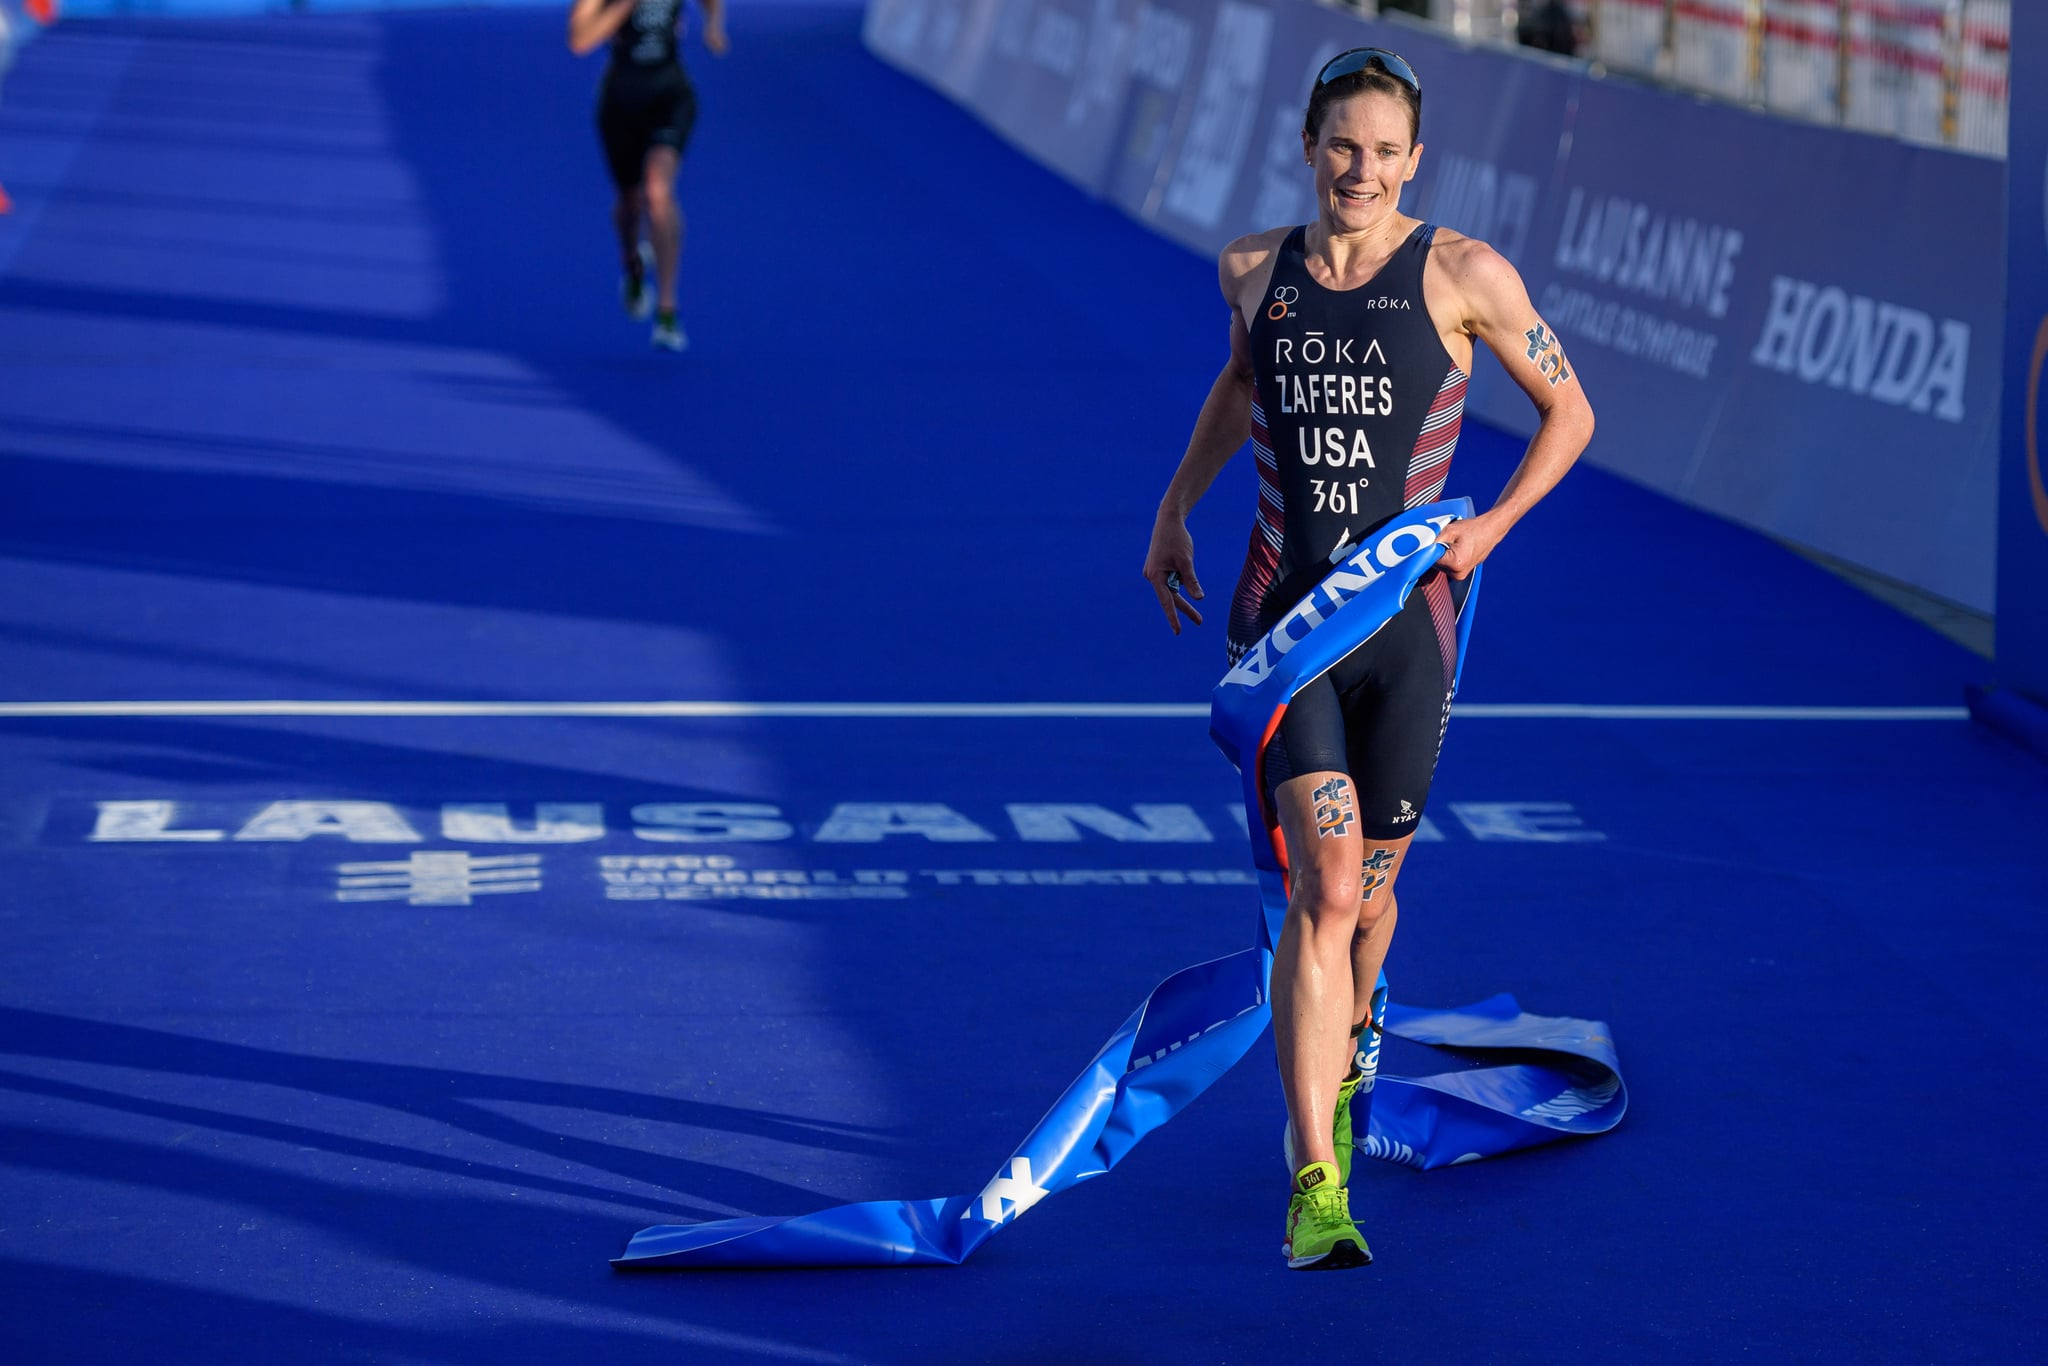 LAUSANNE, SWITZERLAND - AUGUST 31: Katie Zaferes of the United States reacts after her win during the women's elite olympic race at the ITU World Triathlon Grand Final on August 31, 2019 in Lausanne, Switzerland. (Photo by Jörg Schüler/Getty Images)